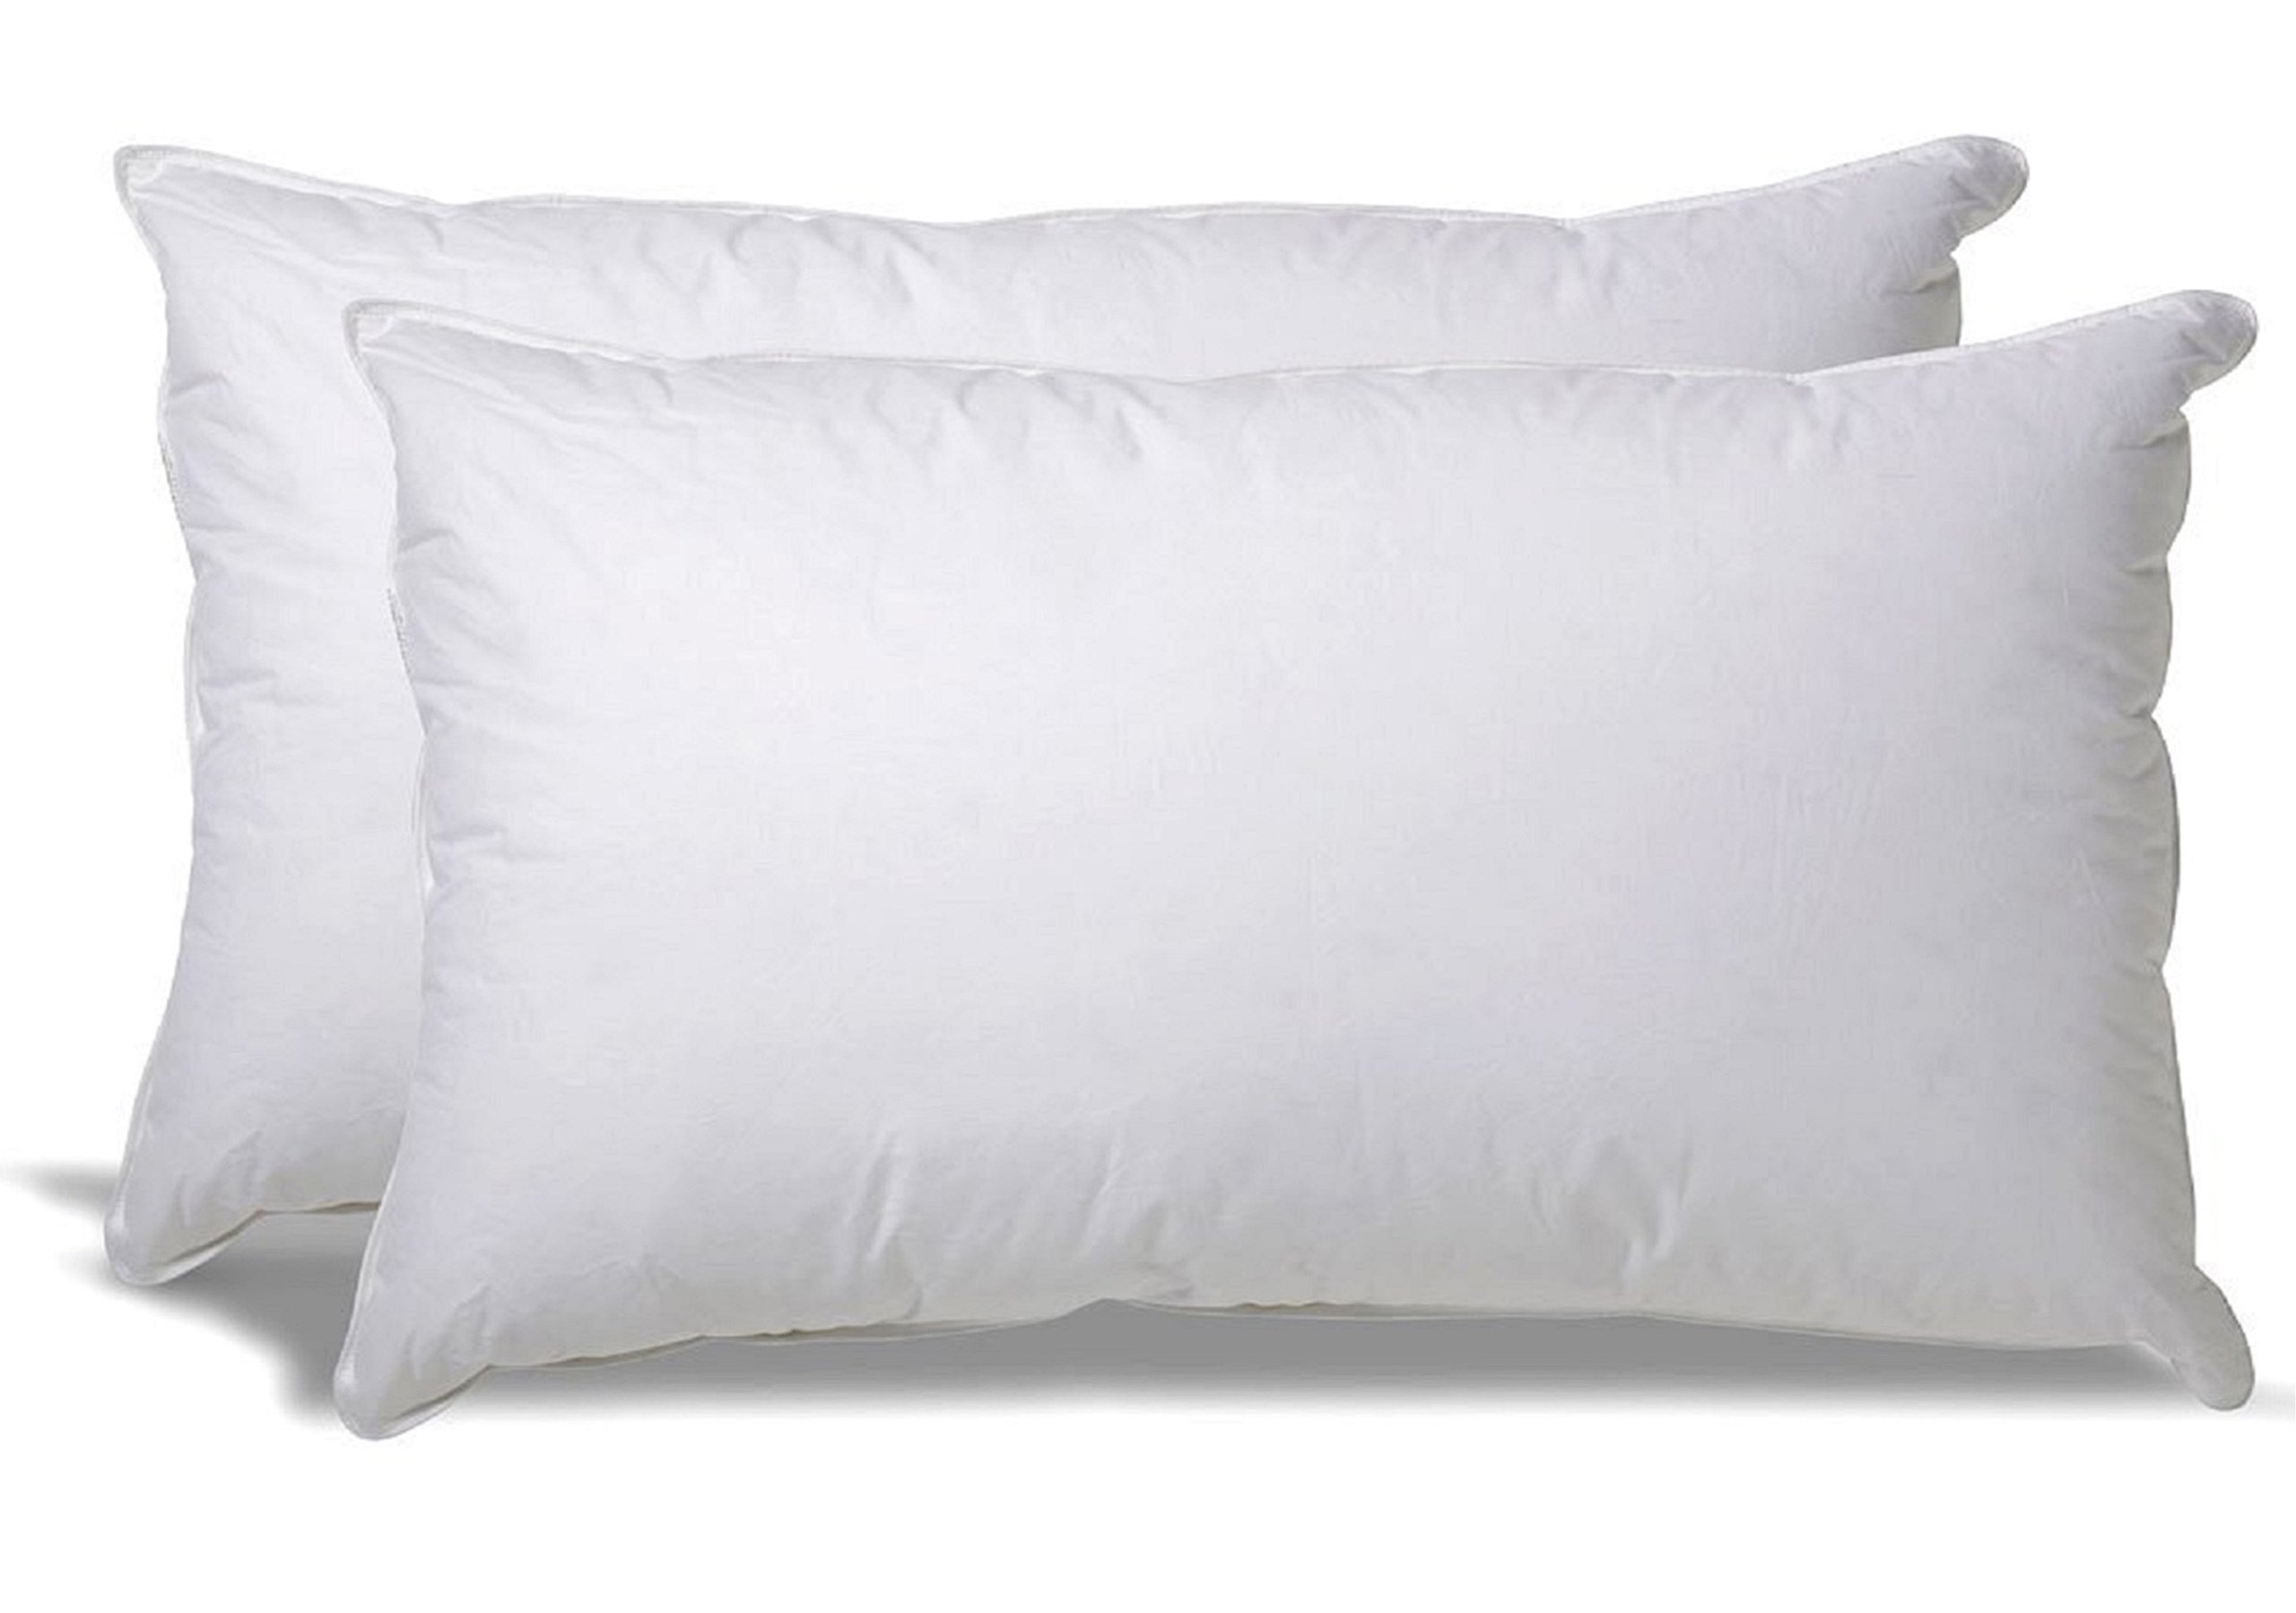 White Classic Down-Alternative Soft Bed Pillows for Sleeping - 100% Cotton Pillow Cover - Hypoallergenic Dust Mite Resistant - No Flattening - King Size - 2-Pack by White Classic